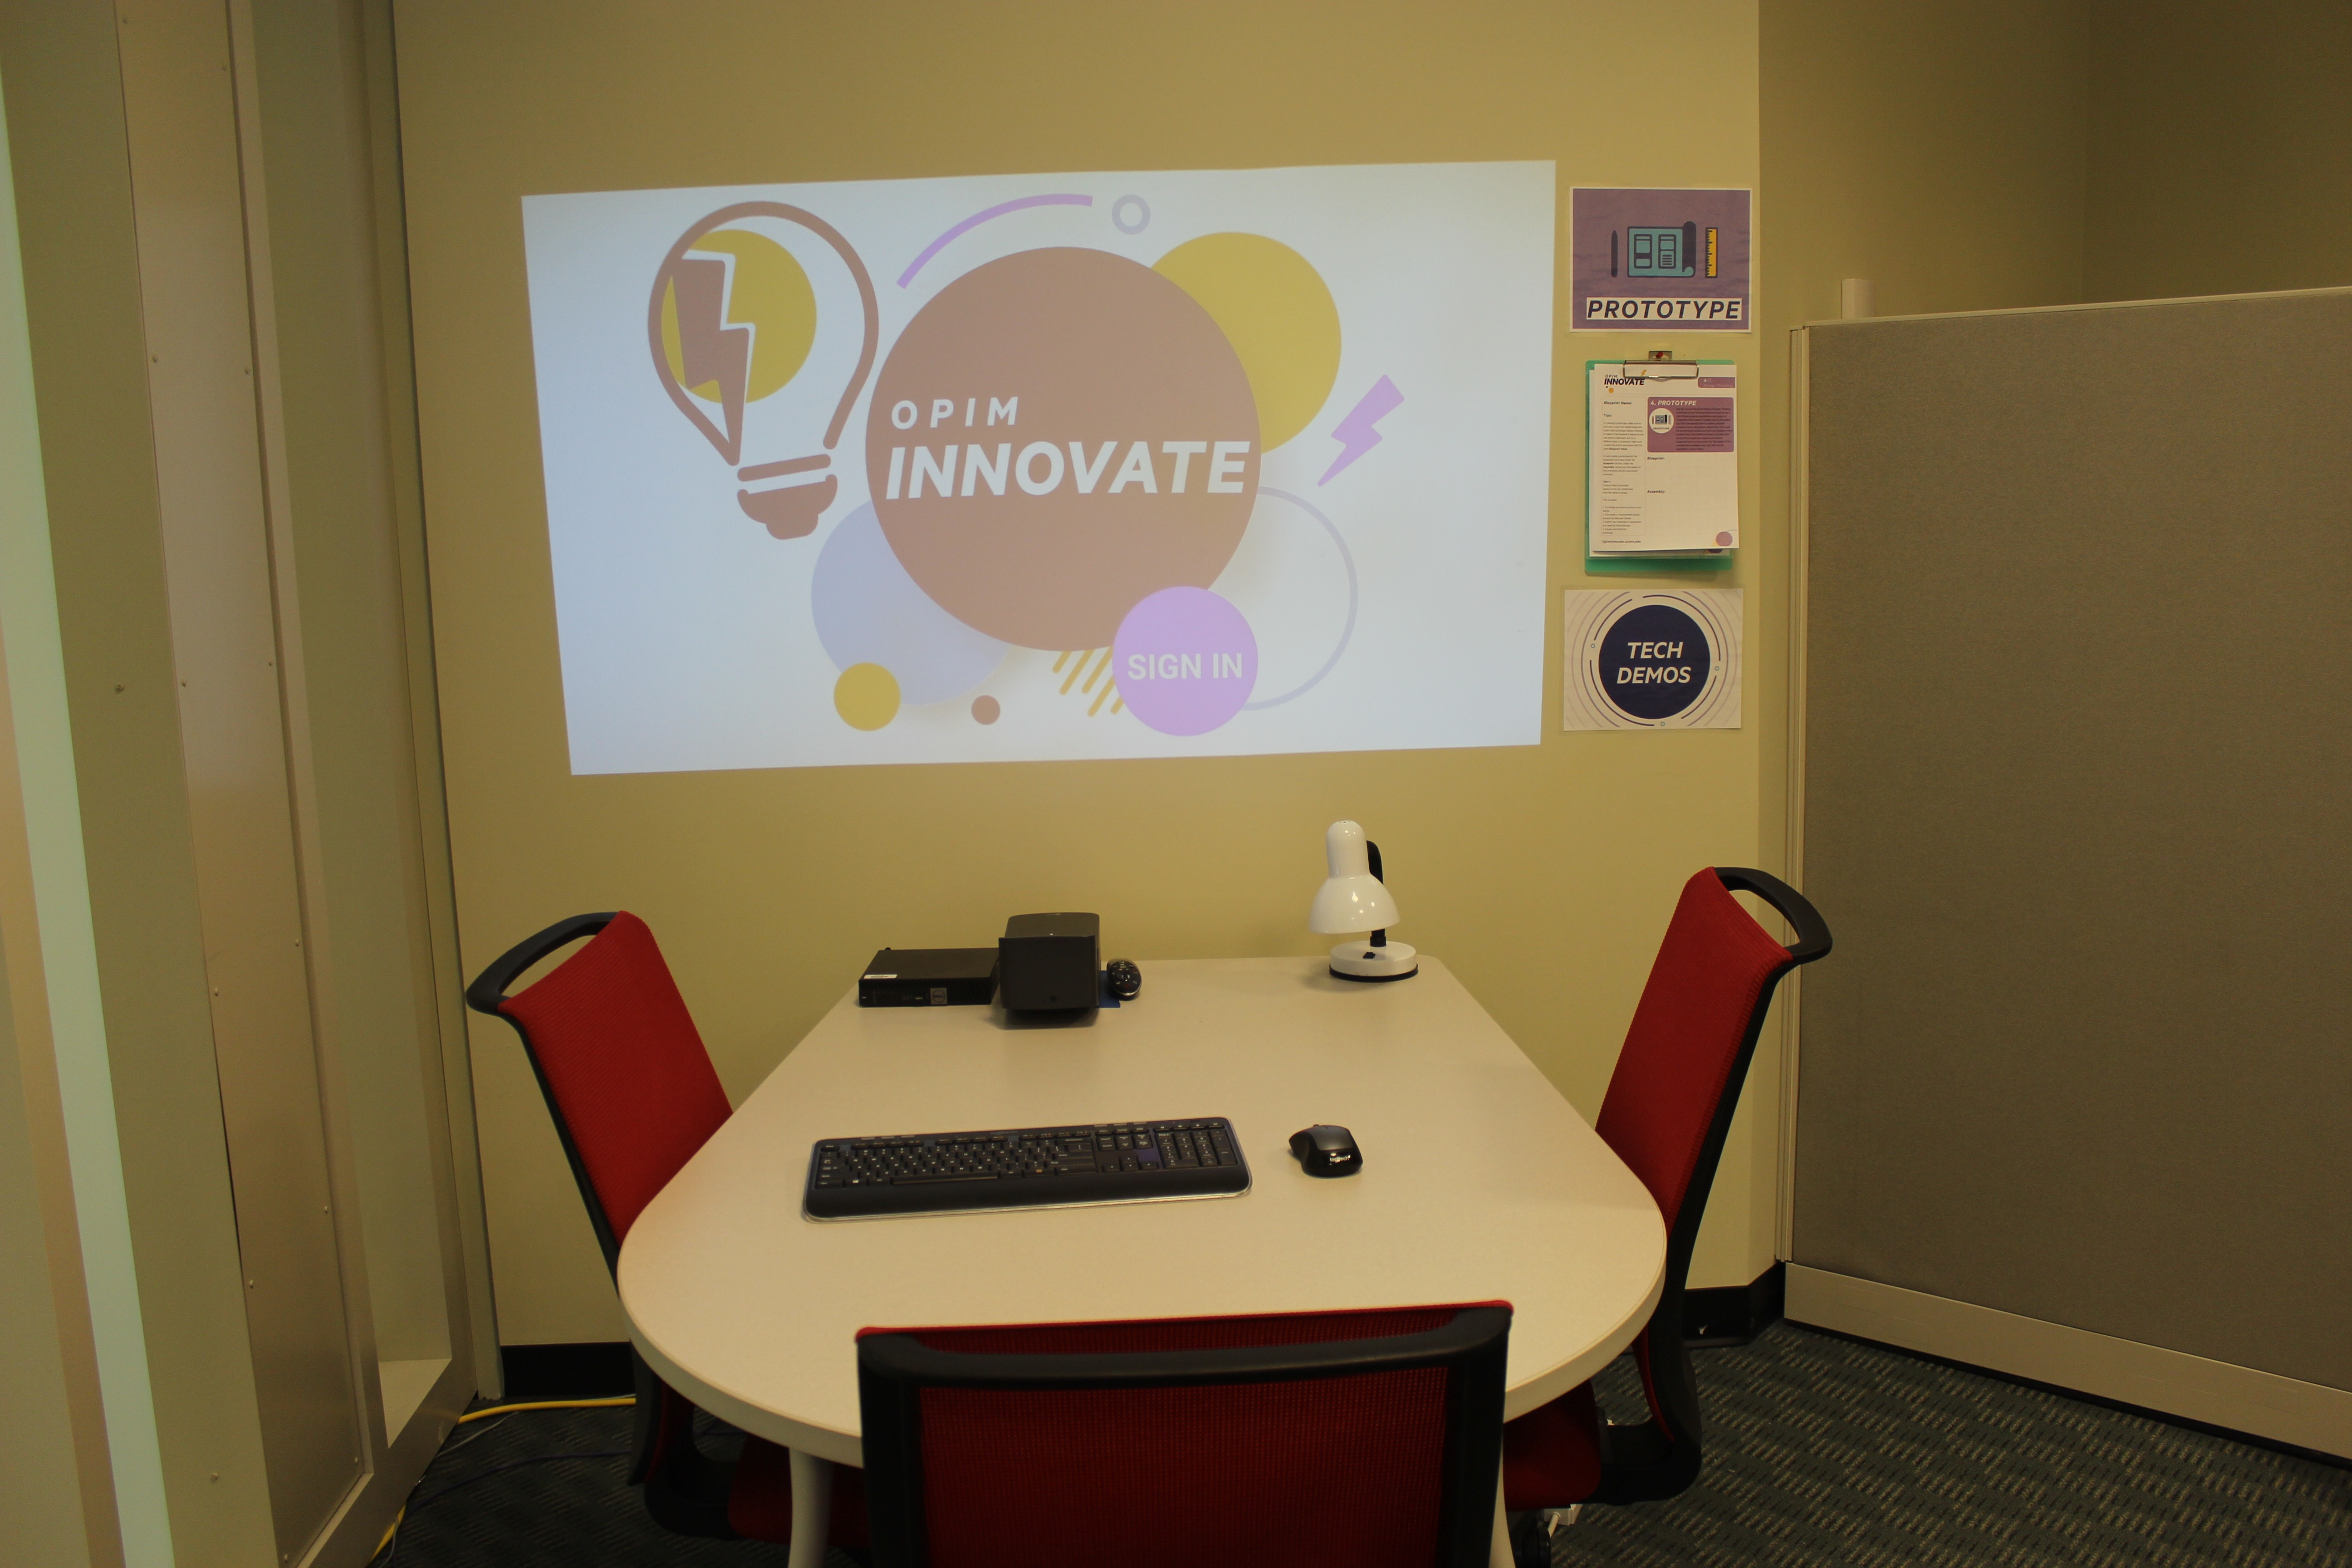 Innovation Space: Prototype Space